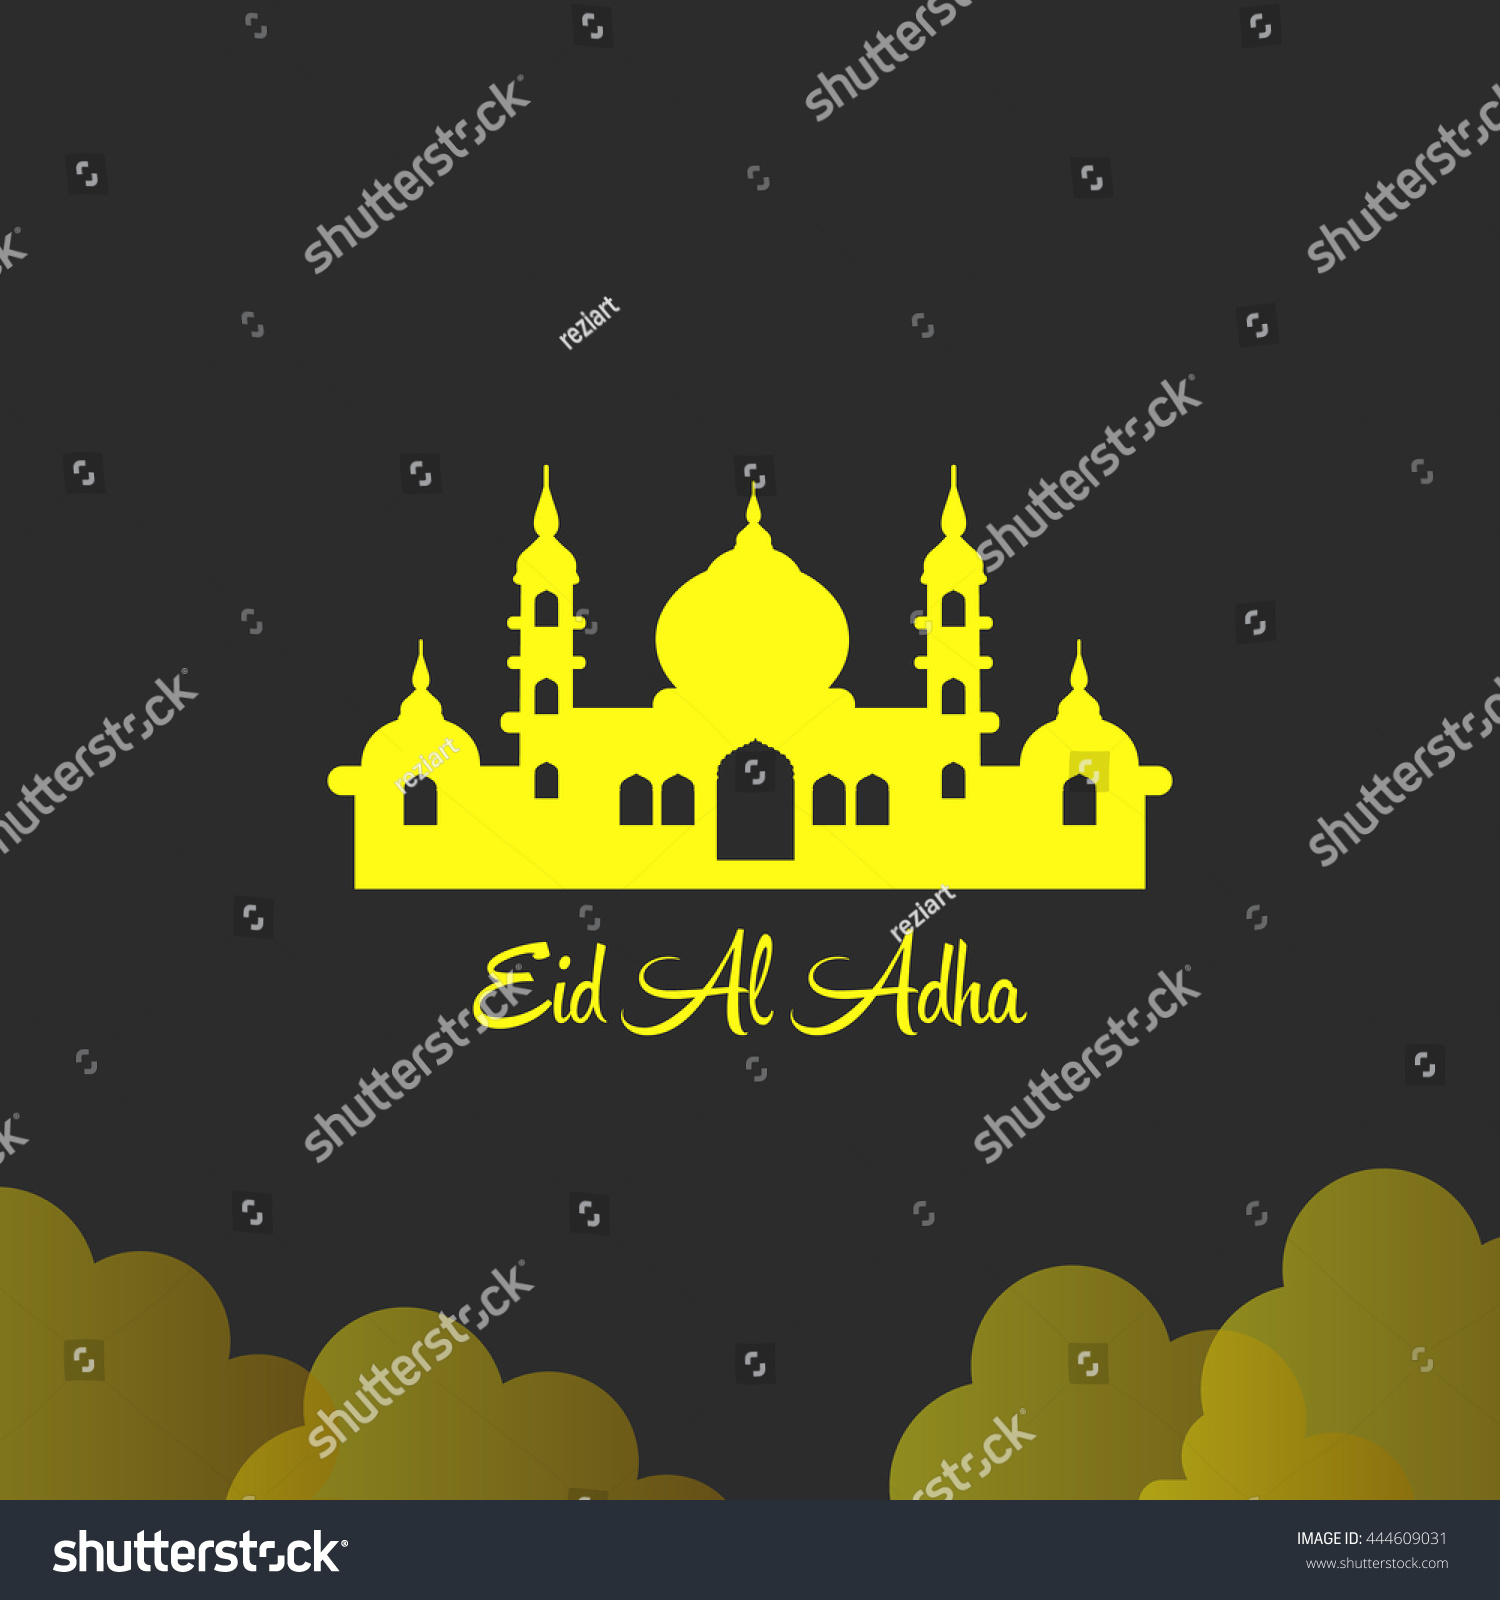 Greeting Cards Illustration Ramadhan Ramadhan Kareem Eid Mubarak